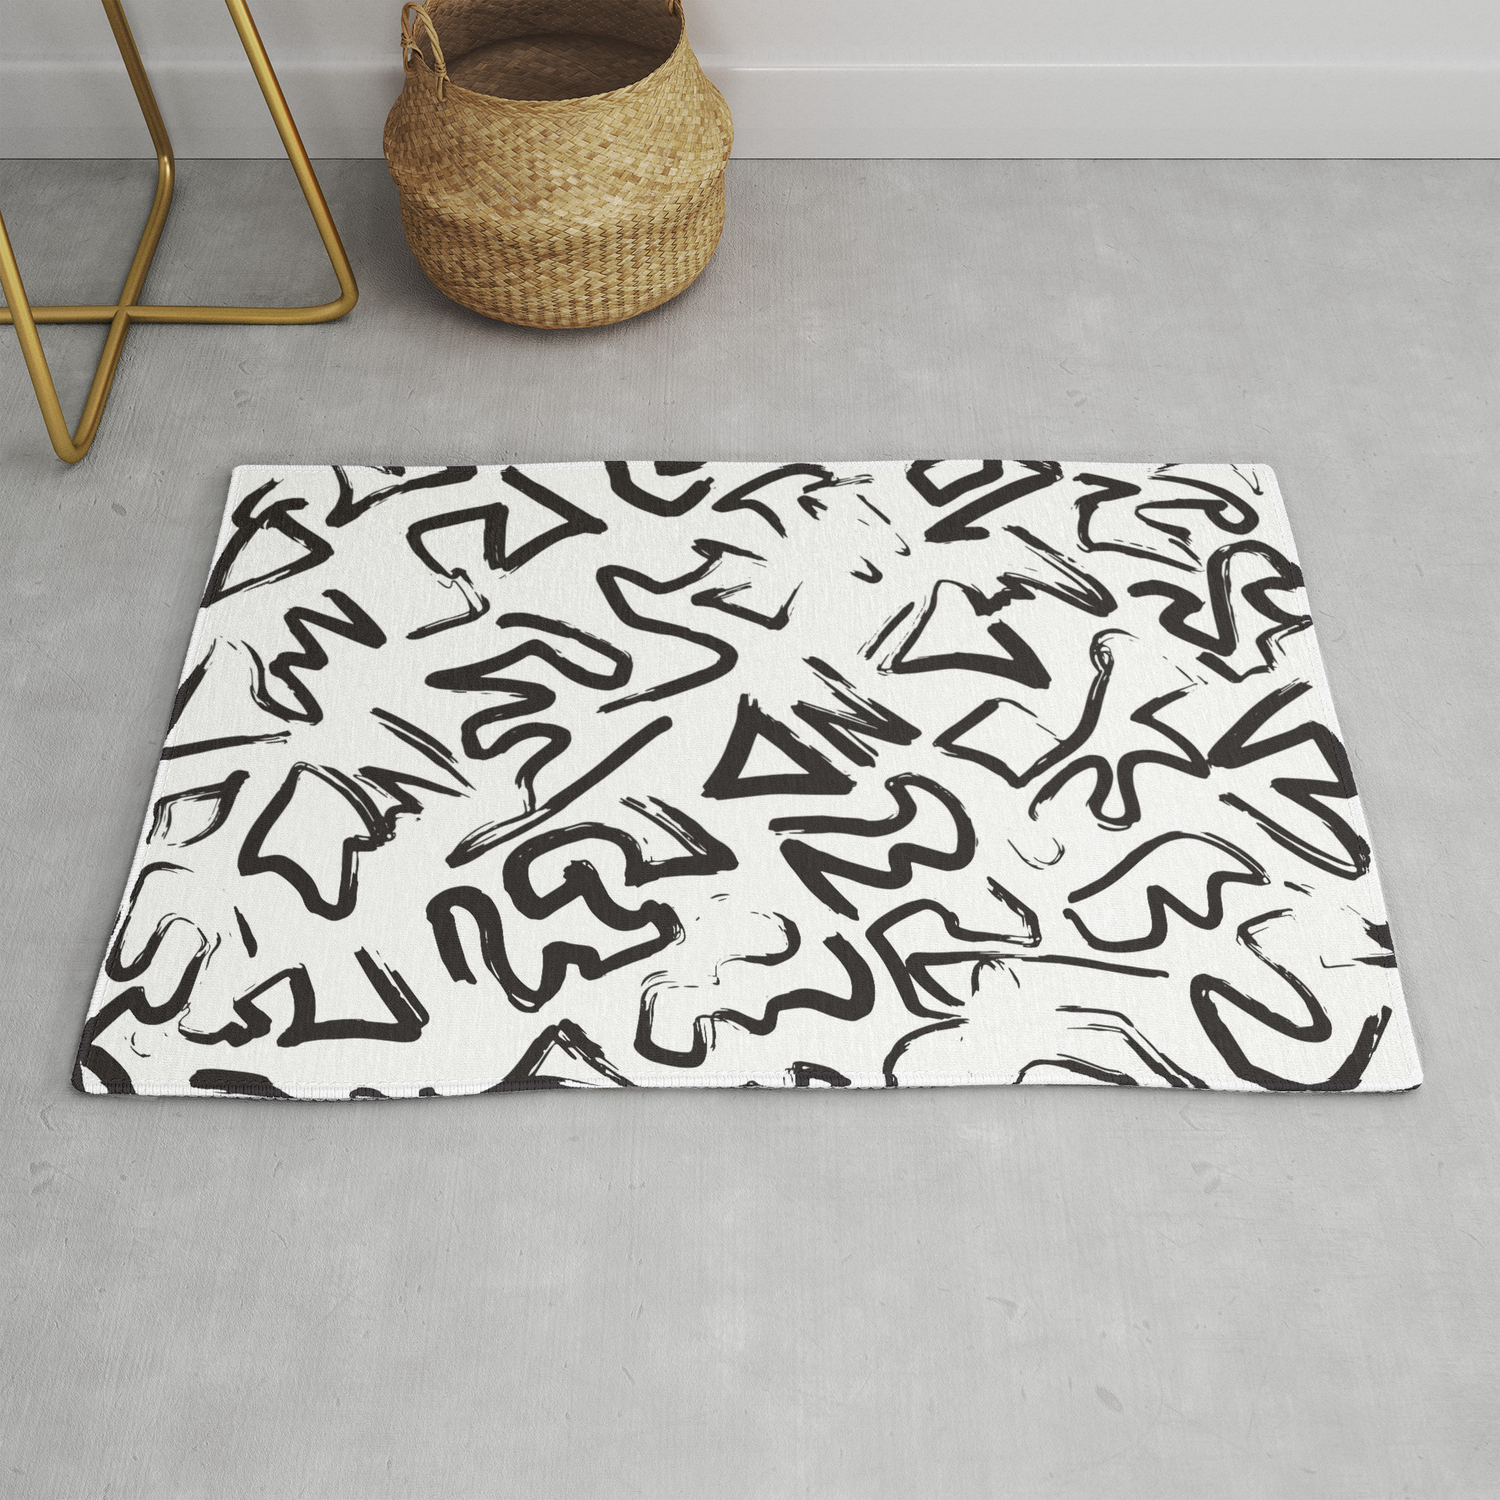 Picture of: Modern Black White Abstract Graffiti Brushstrokes Rug By Blackstrawberry Society6